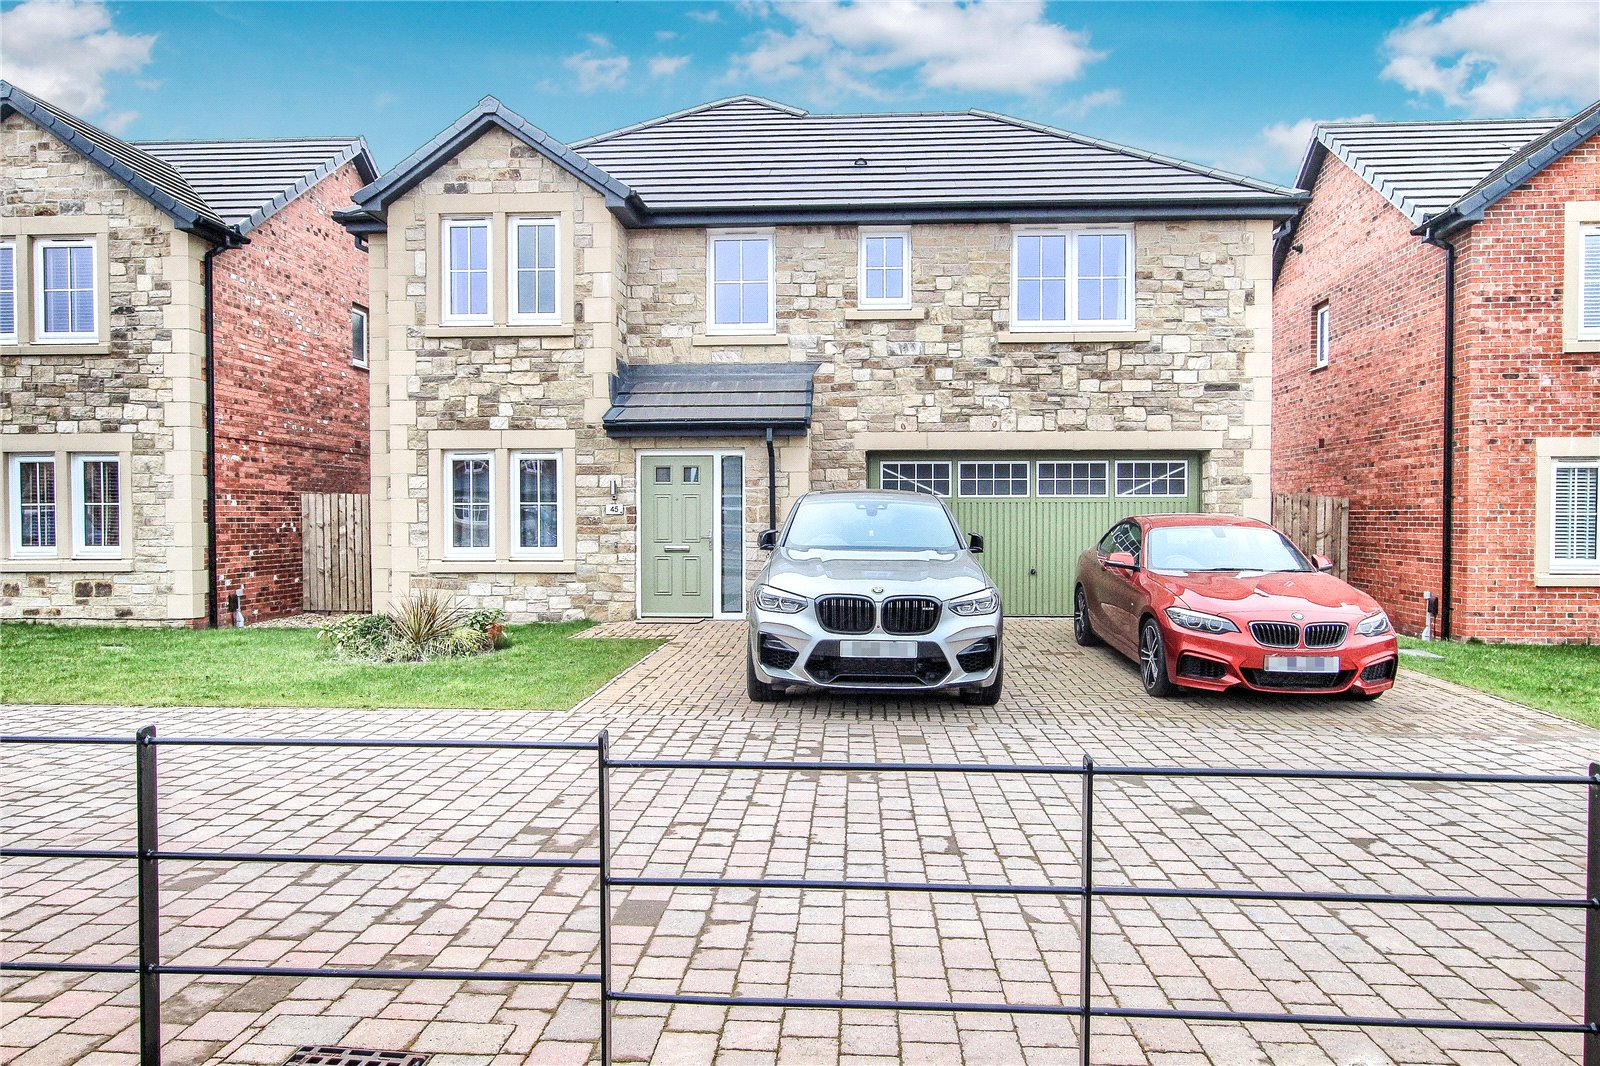 4 bed house for sale in Bloomfield Drive, Wynyard  - Property Image 1